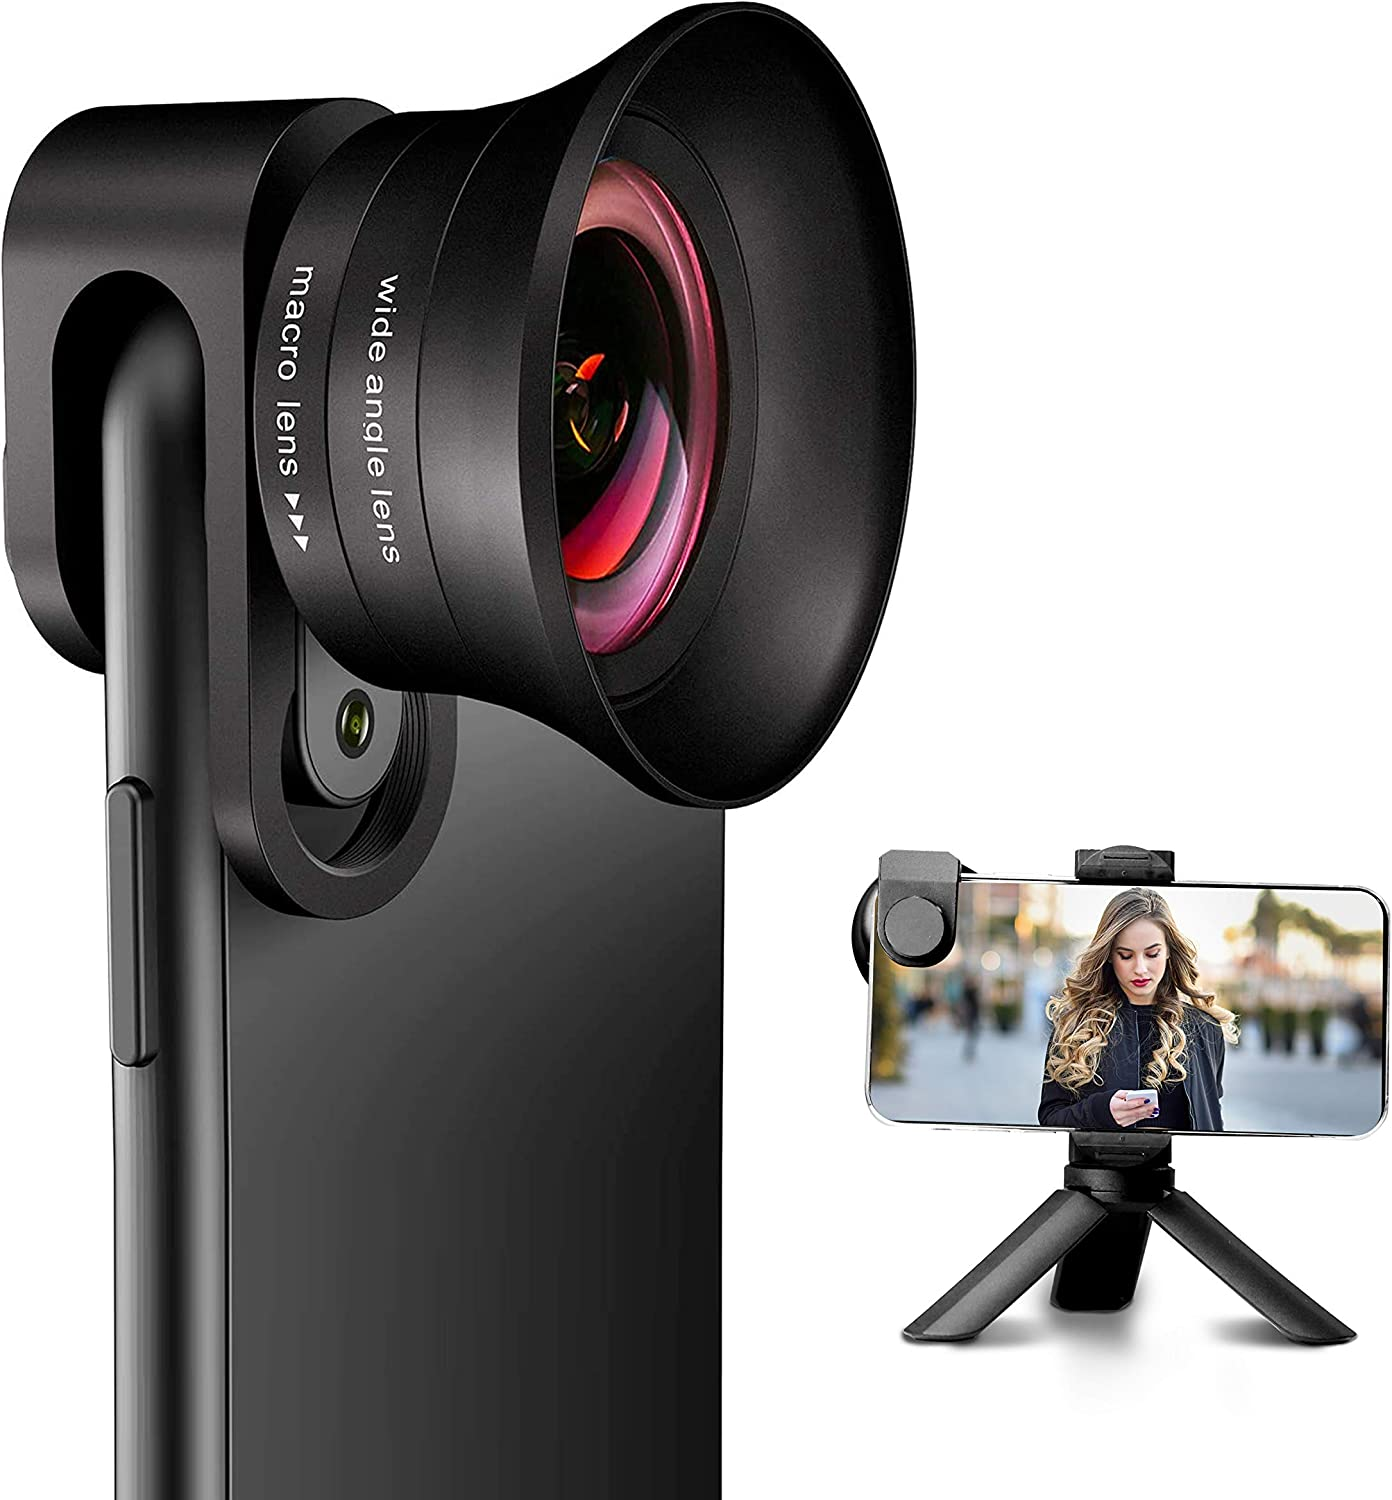 Amazon Com Phone Camera Lens Pro With Tripod Angfly 4k Hd 2 In 1 Aspherical Wide Angle Lens Super Macro Lens Clip On Cell Phone Camera Lenses Compatible With Iphone Android Samsung Mobile Phones And